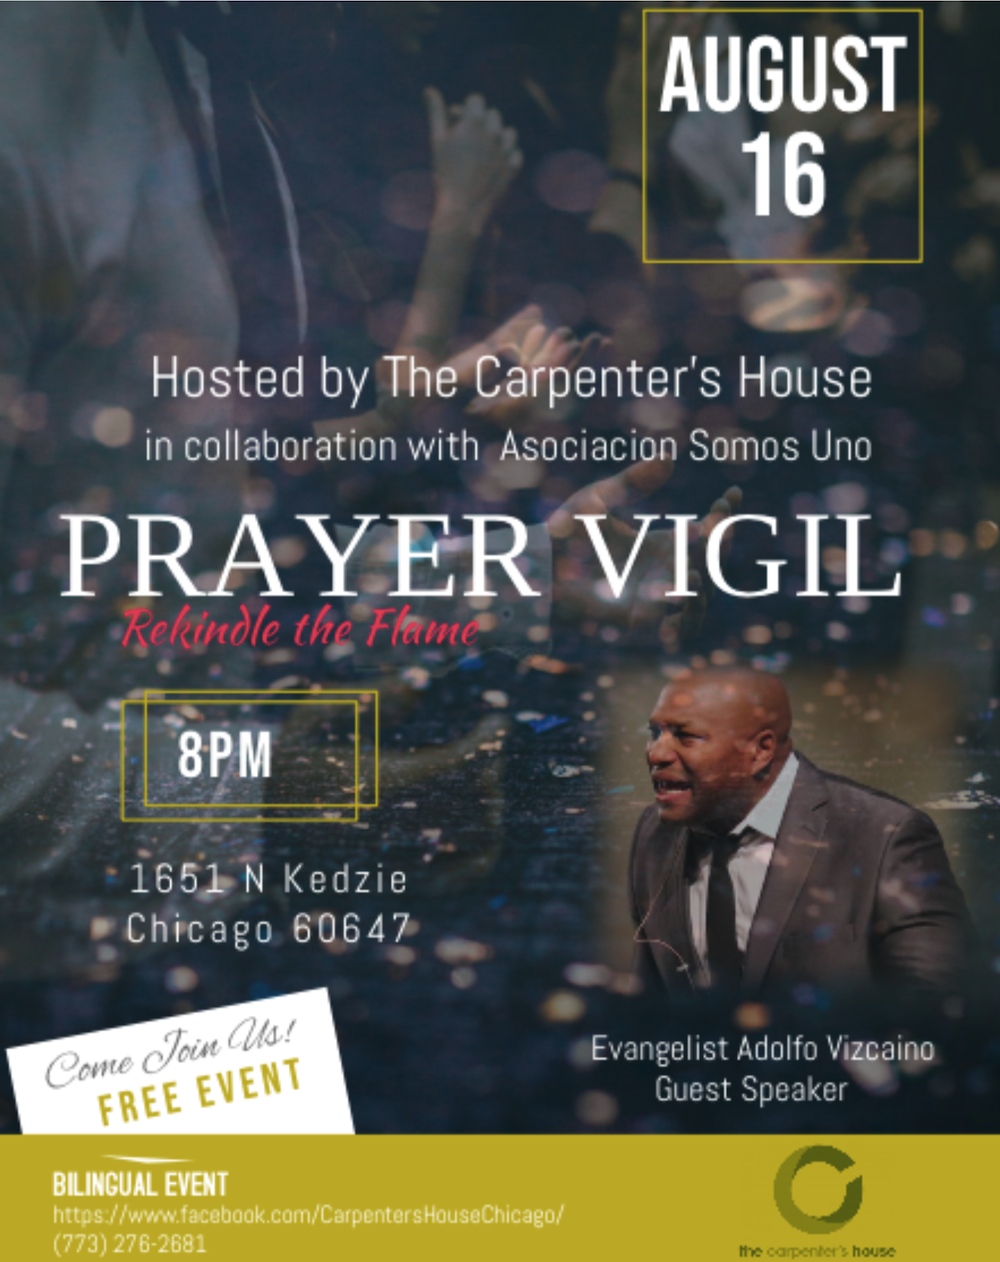 Prayer Vigil - Rekindle the Flame